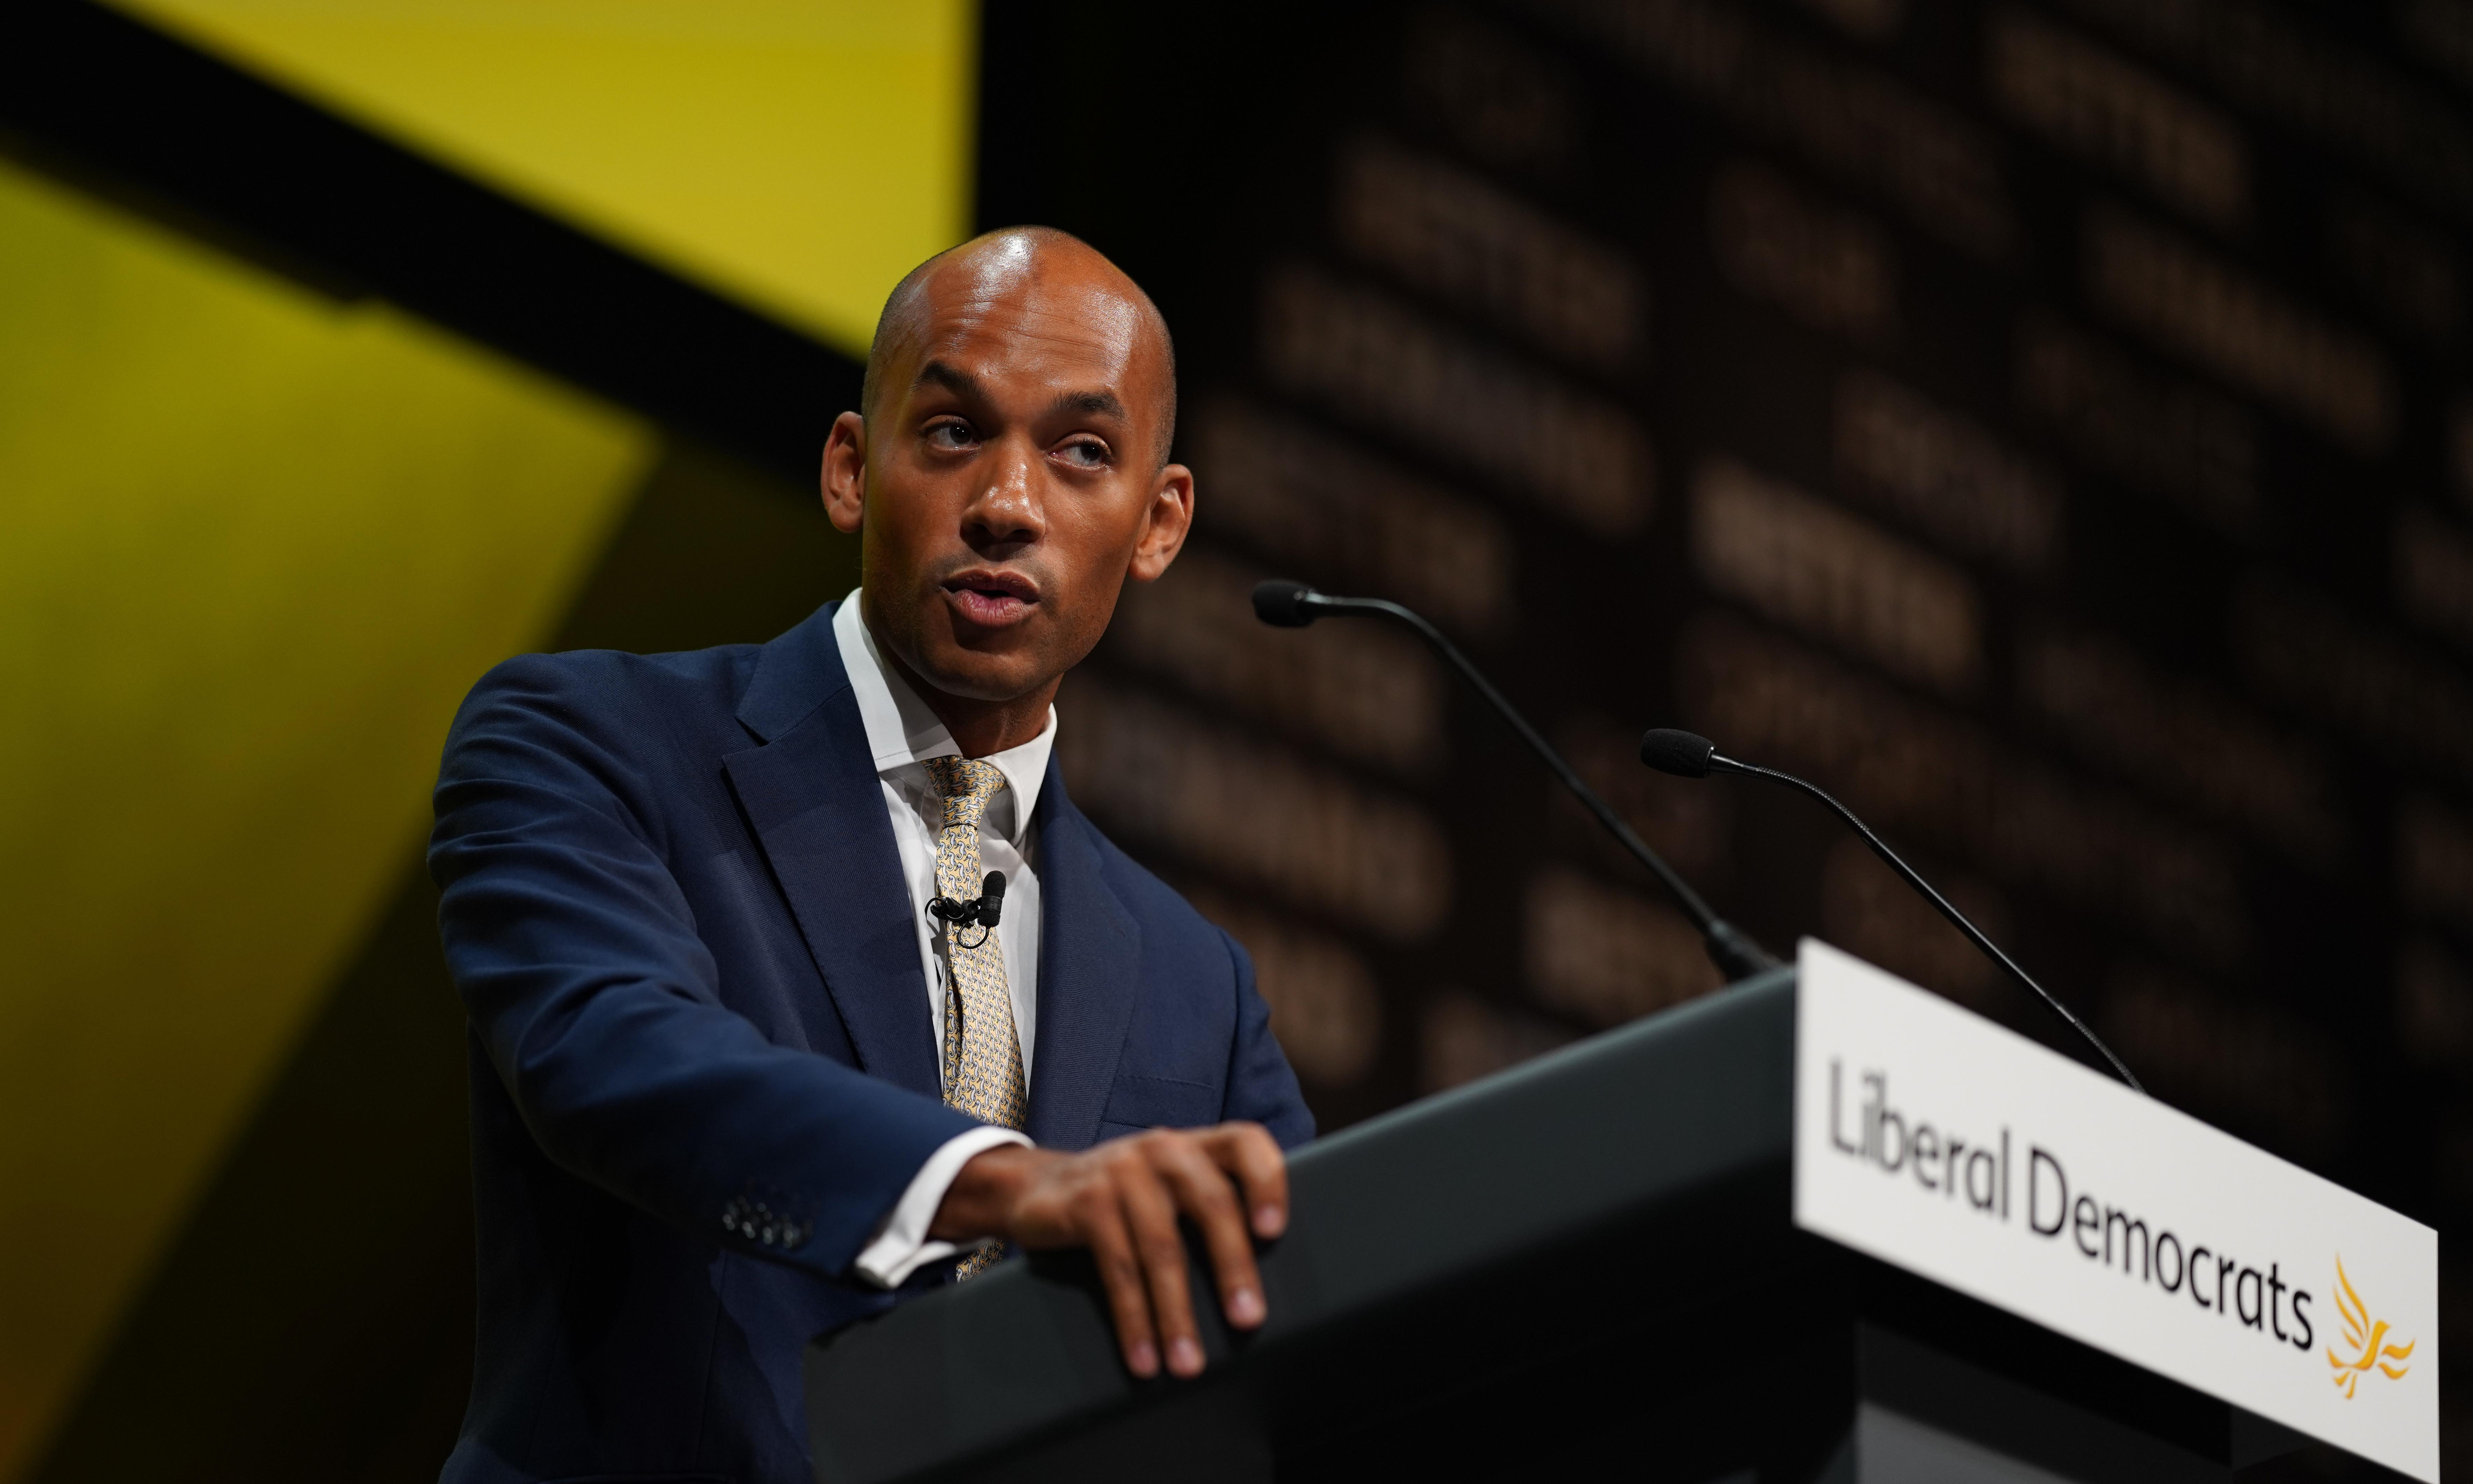 Expand the bandwidth: today at the Liberal Democrat conference